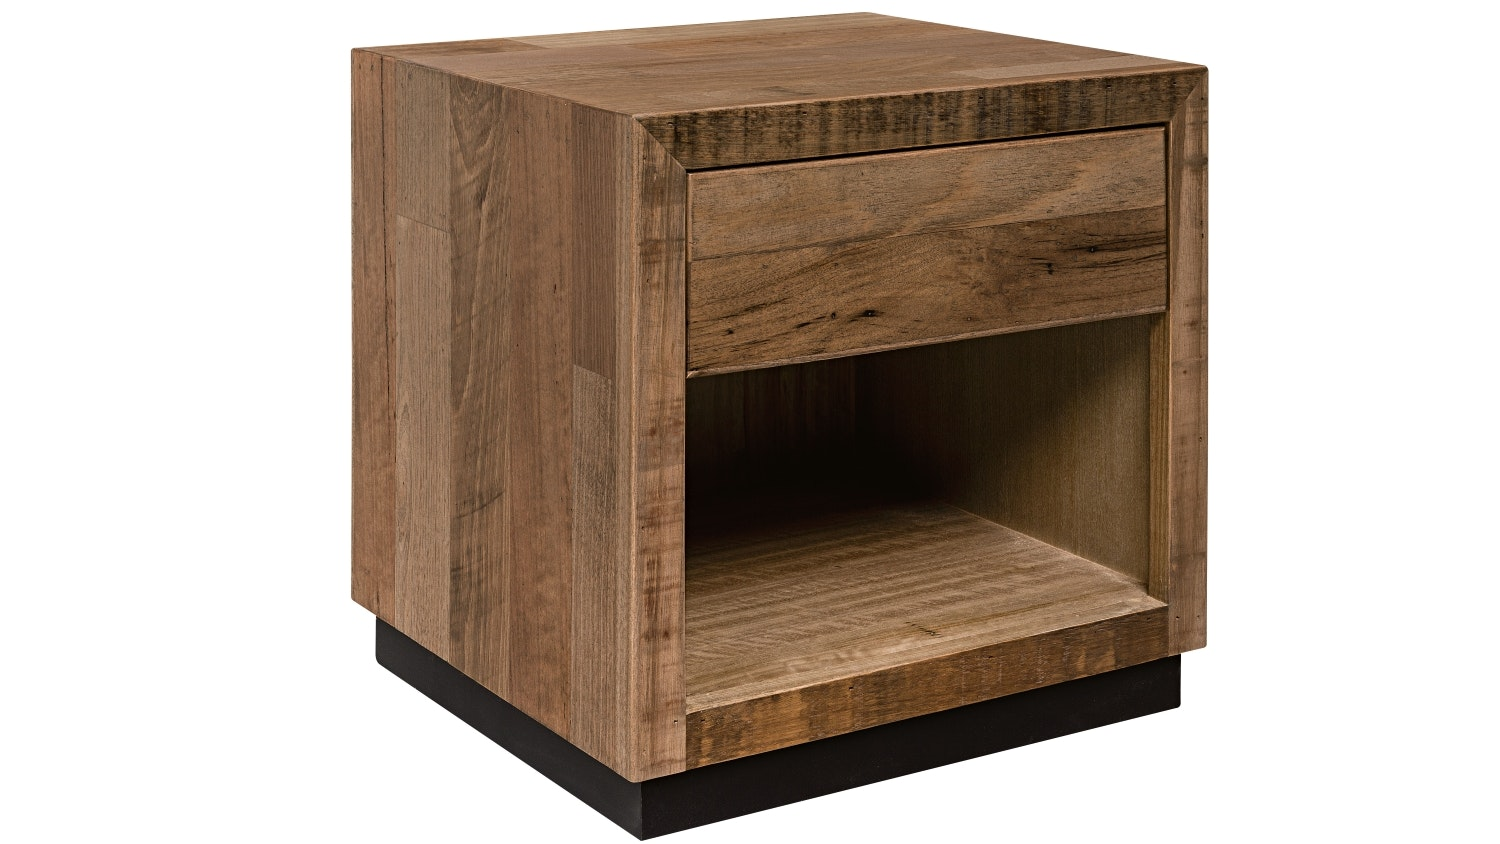 Javier 1 Drawer Small Bedside Table